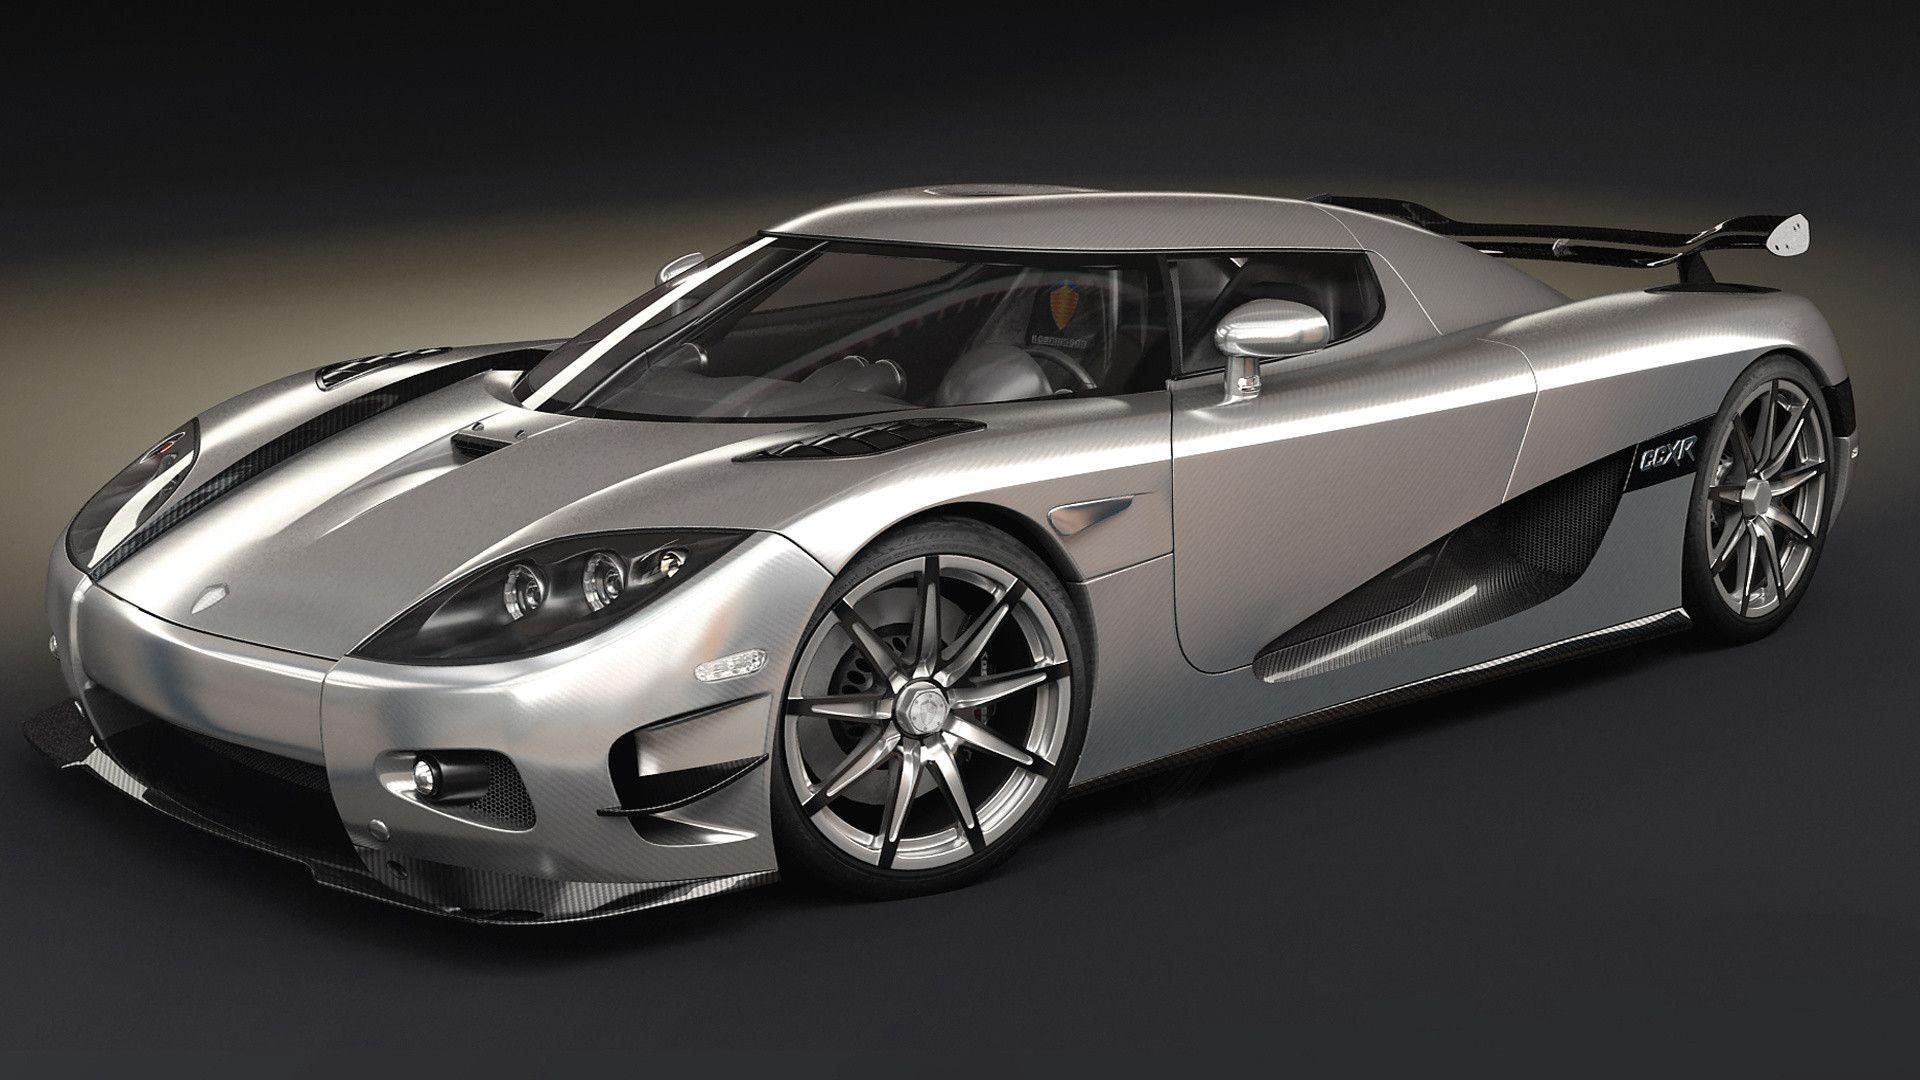 Koenigsegg Ccxr Trevita >> Koenigsegg CCXR Wallpapers - Wallpaper Cave